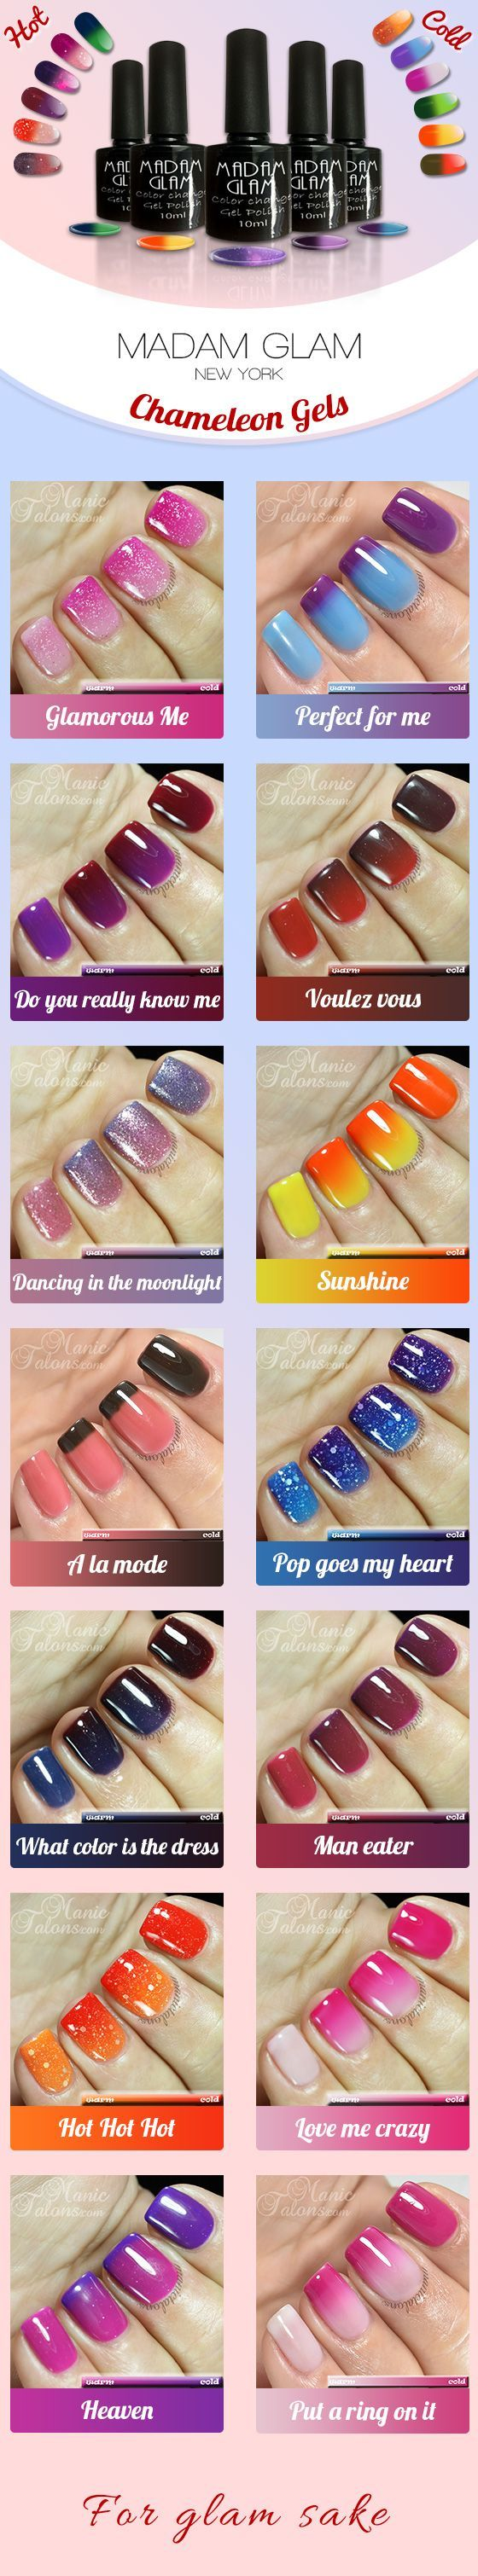 Over 30 Color Changing Gels Sing up for 50% OFF on your first order. Vegan and Cruelty Free Gels Check them all here https://www.madamglam.com/?utm_source=pinterestad-chameleonswatchesmobile